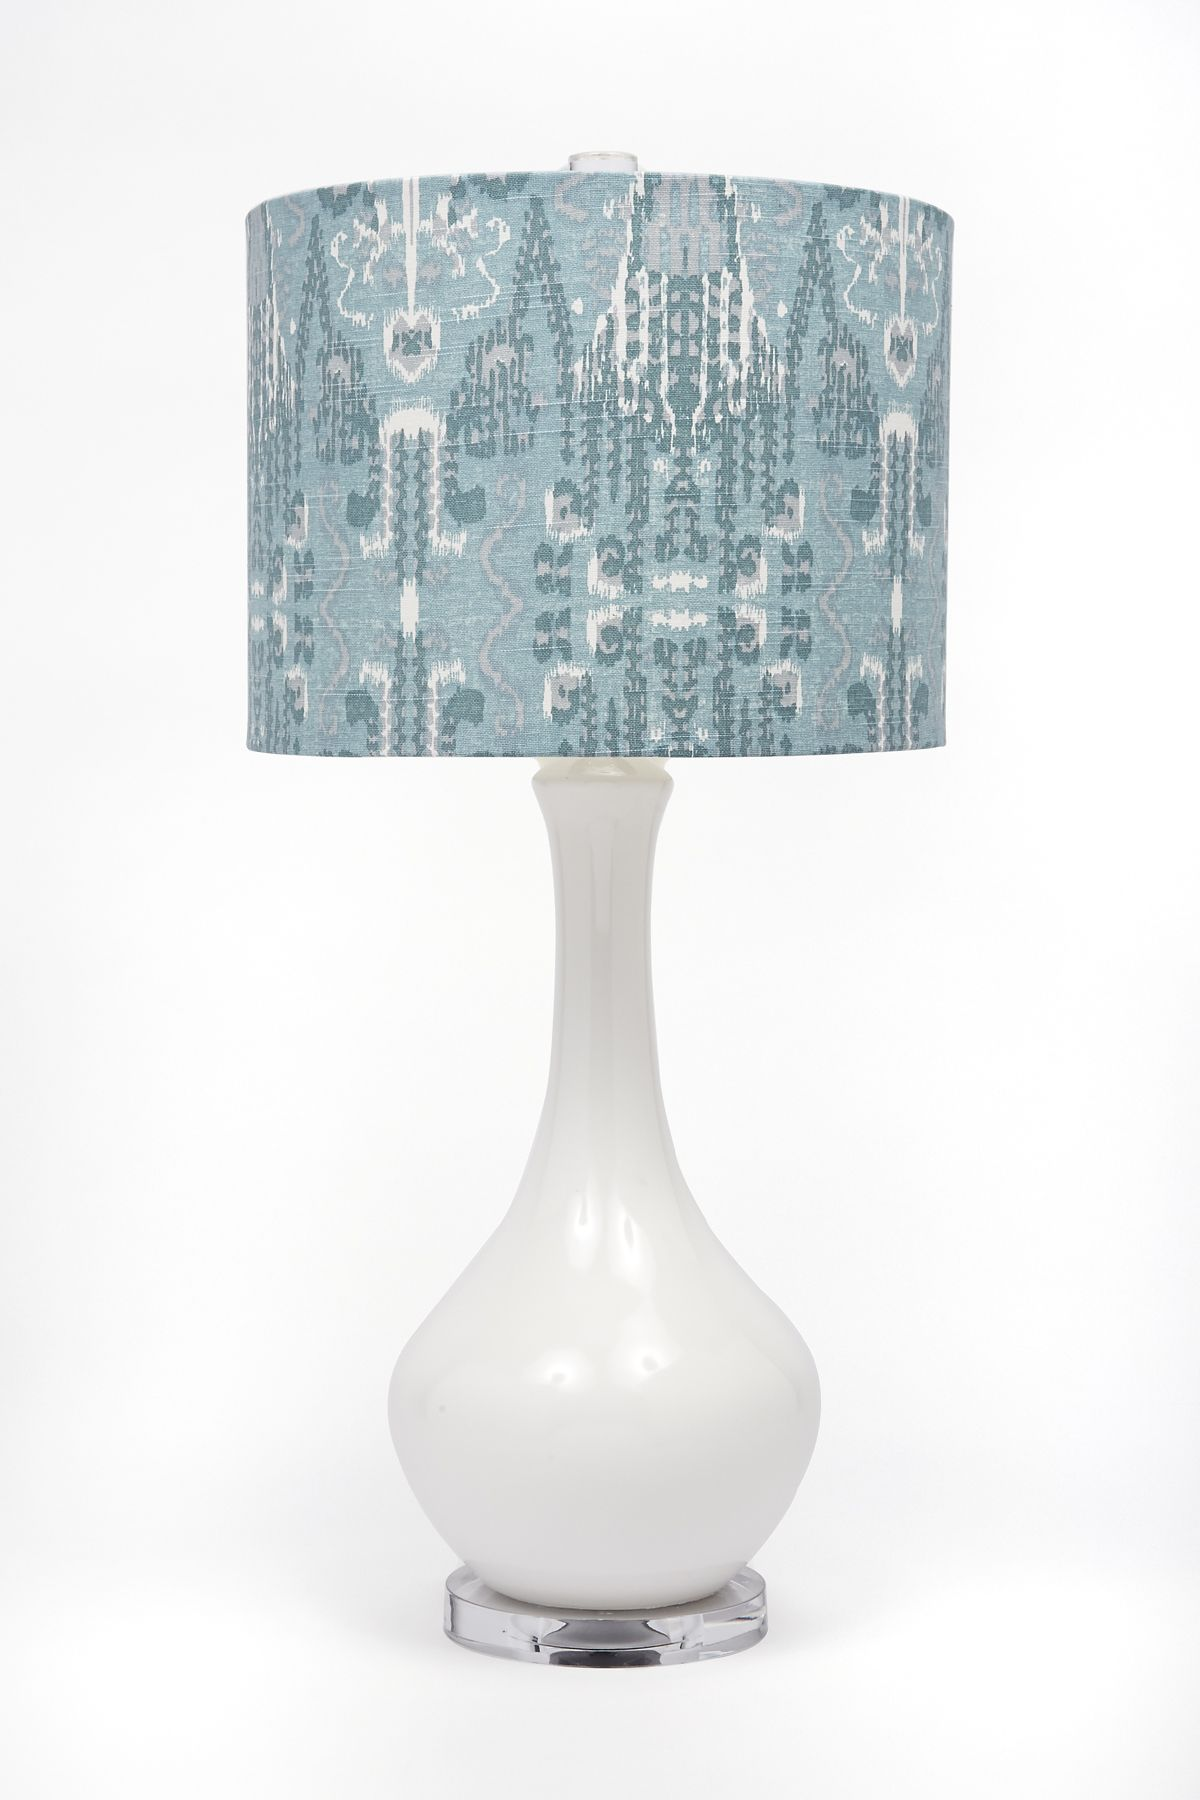 Lacefield for Gallery Designs CL318 ceramic table lamp with ...